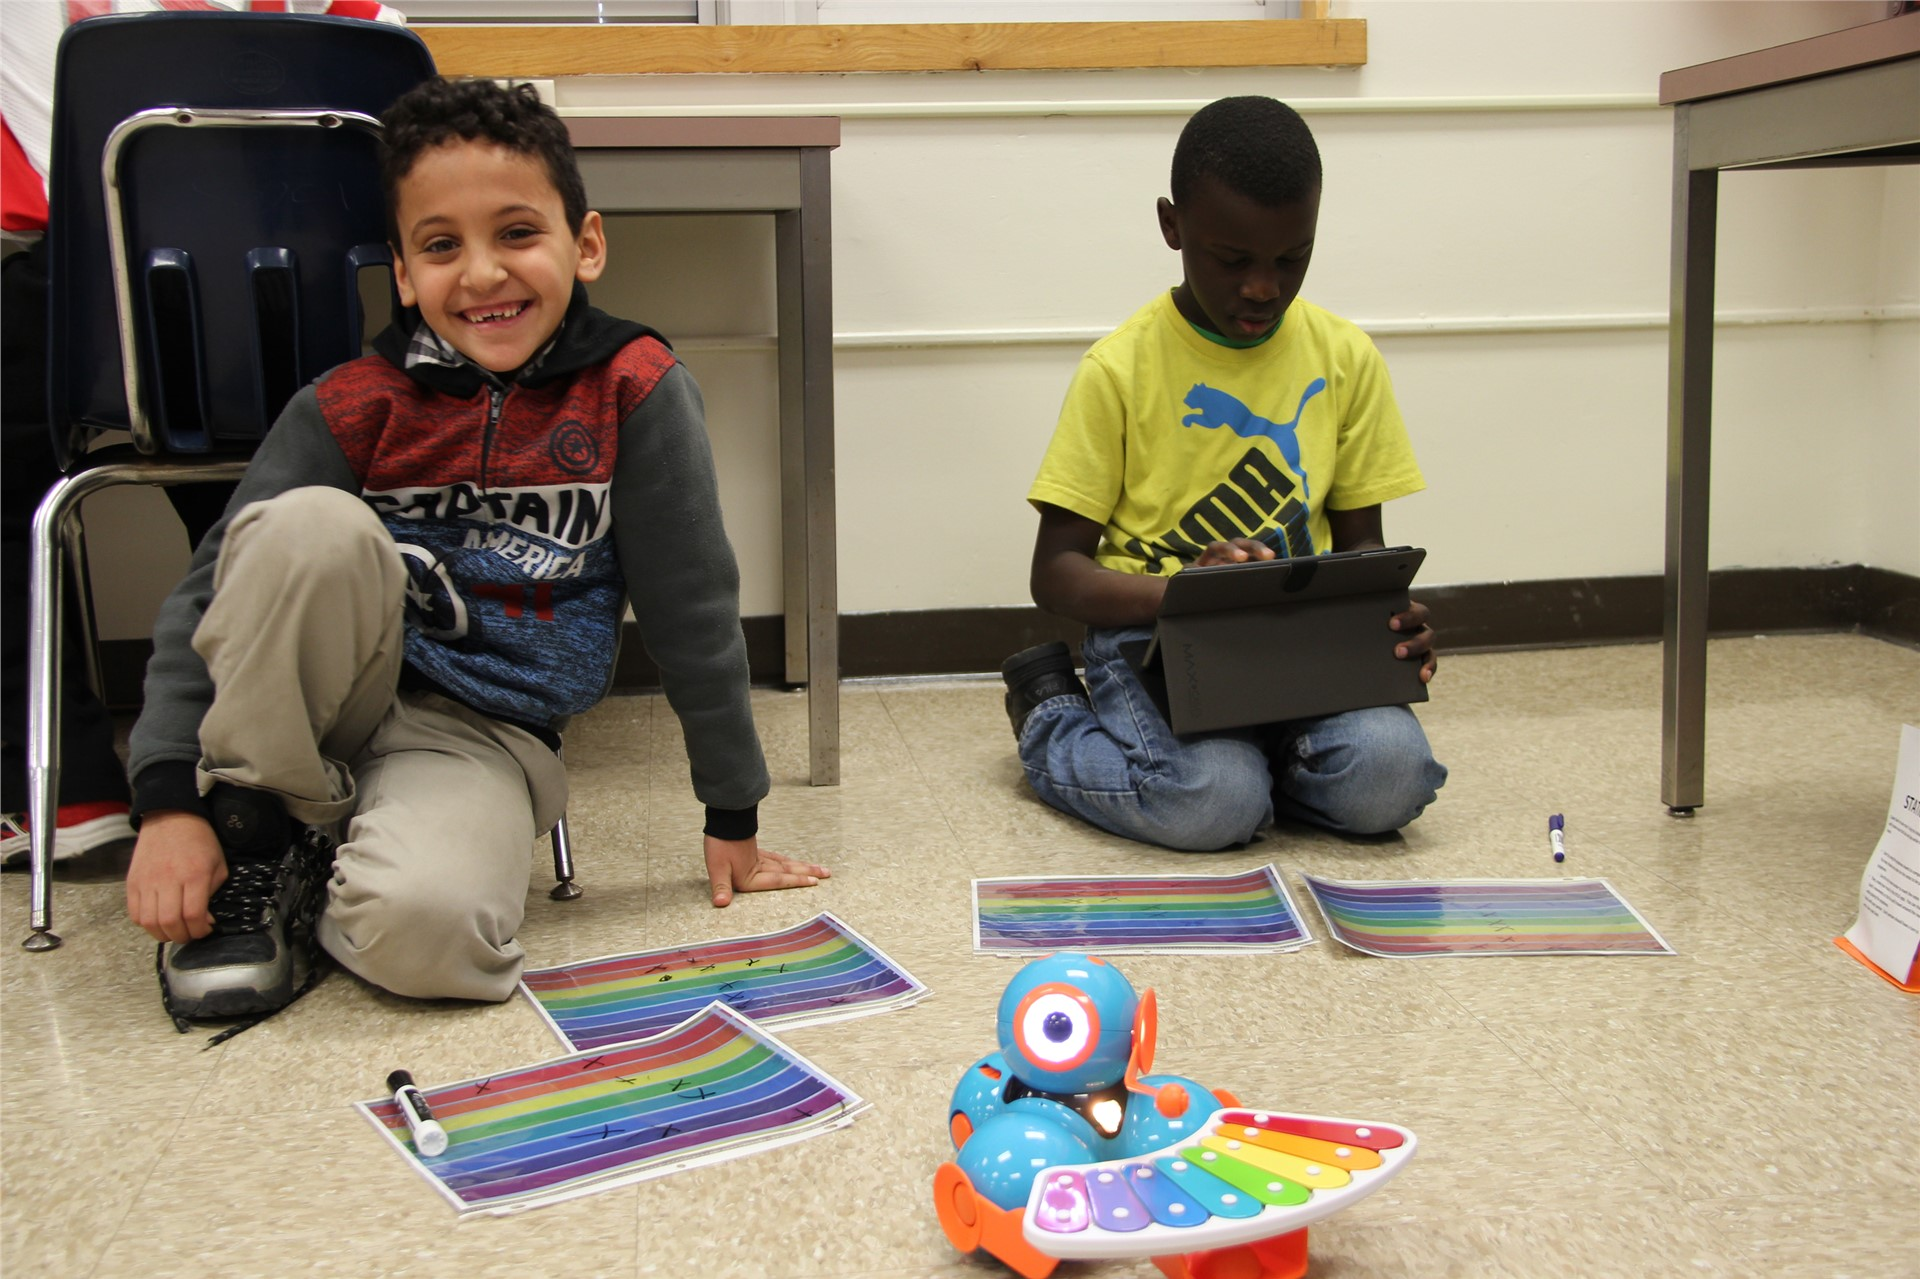 students play with electronic devices